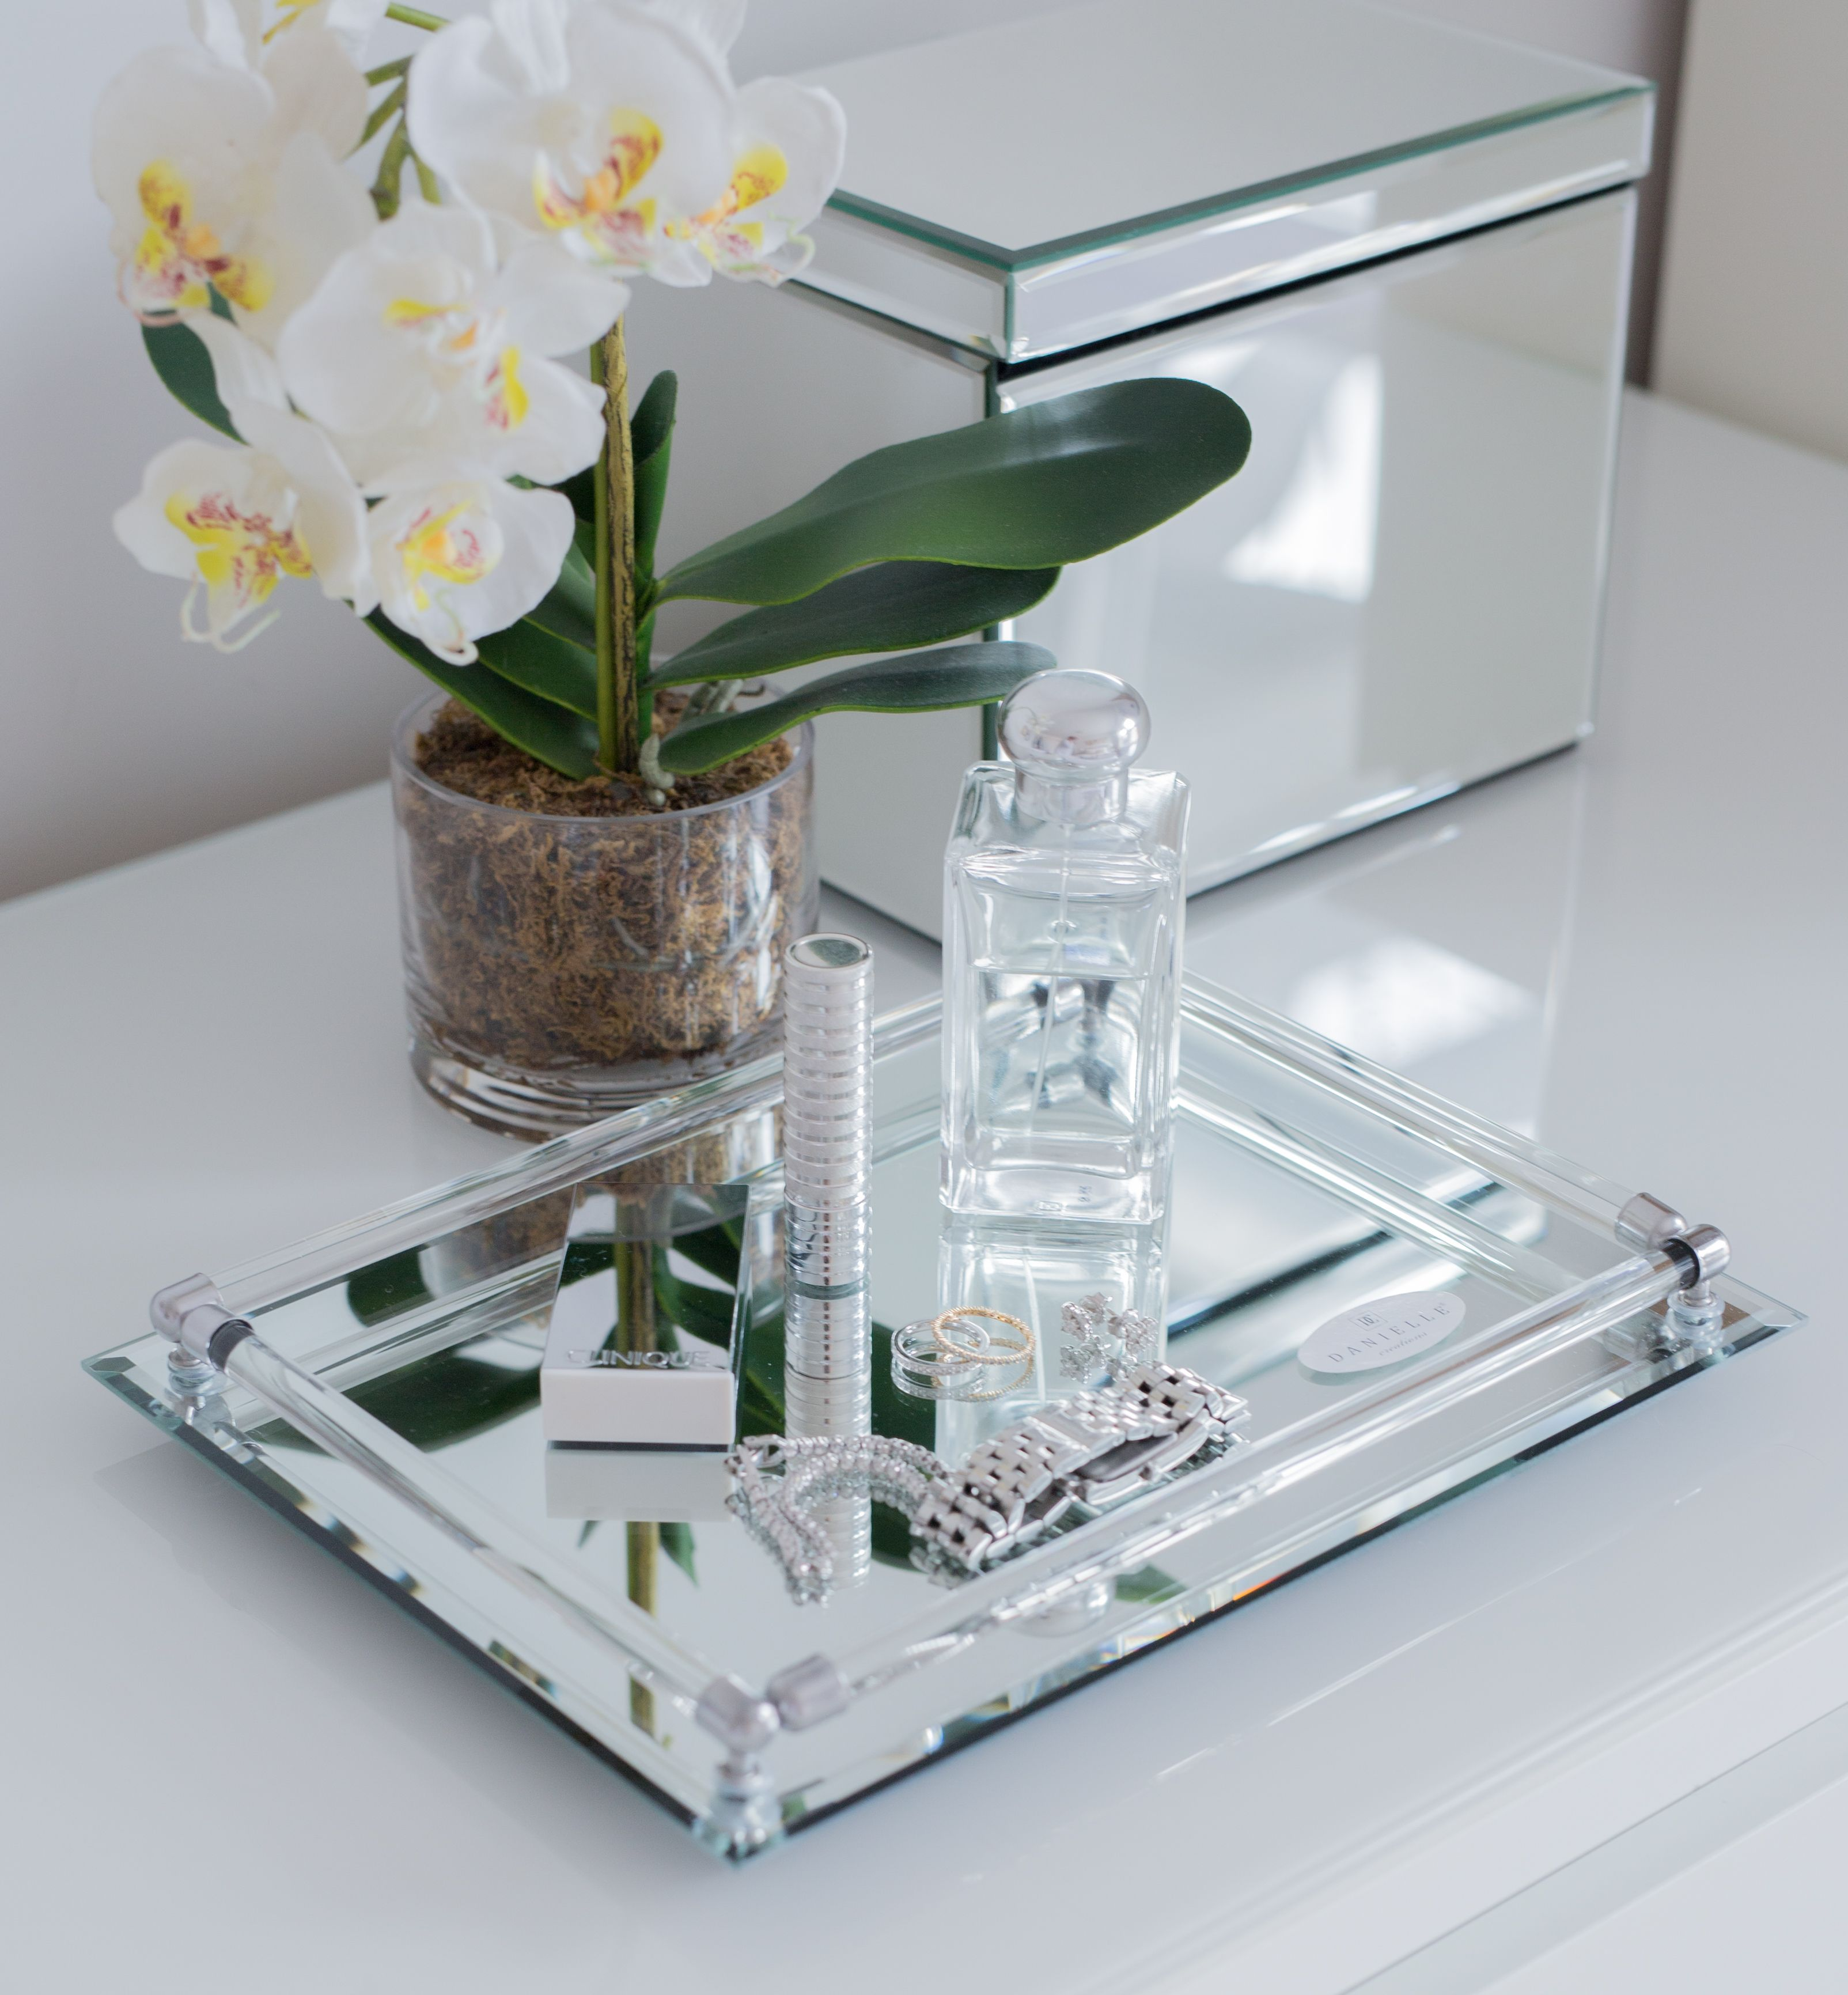 Mirrored Bathroom Accessories Sets Mirrored Vanity Tray Decorate Mirror Vanity Tray